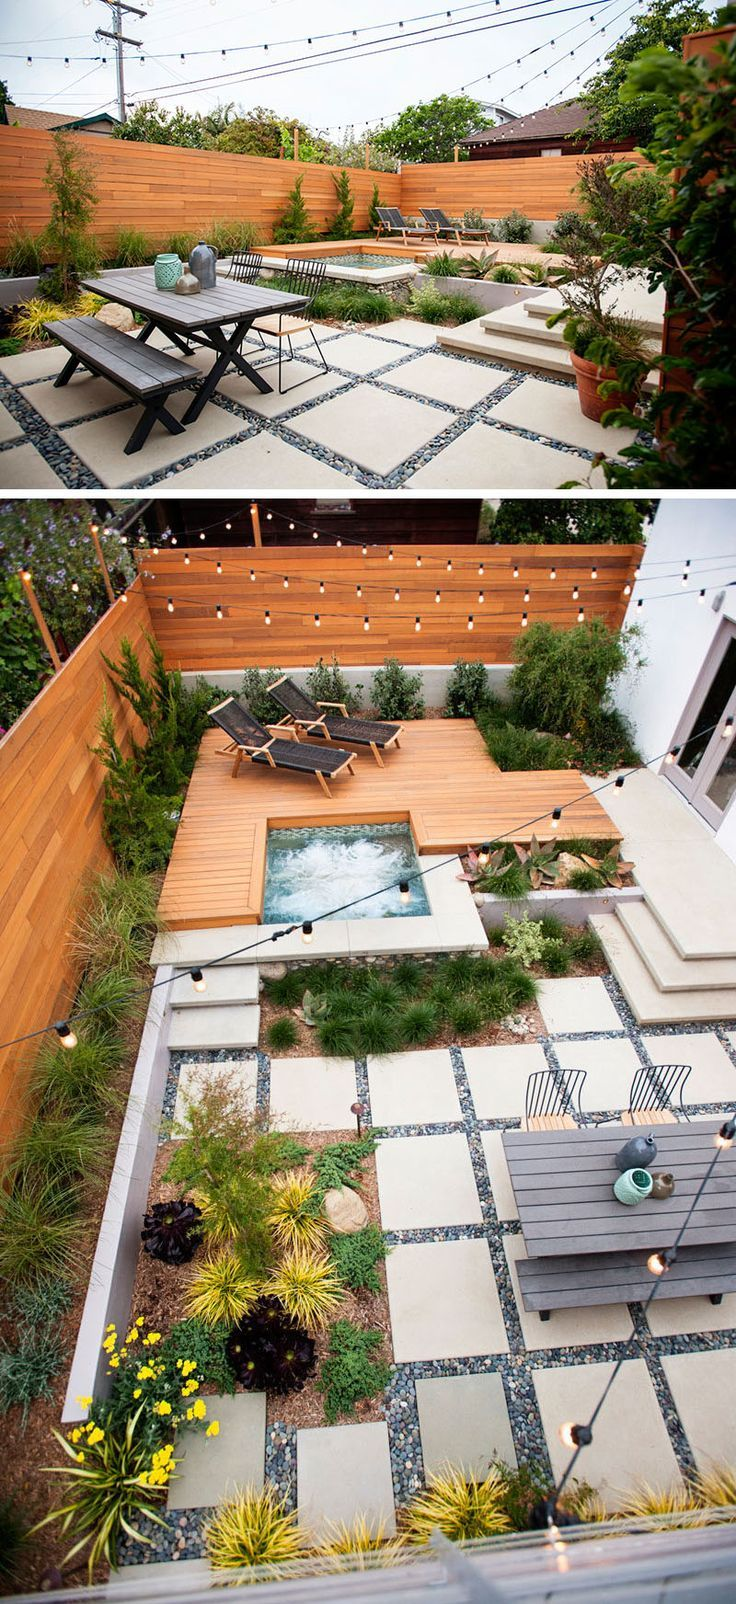 Landscaping Design Ideas 55 backyard landscaping ideas youll fall in love with Landscaping Design Ideas 11 Backyards Designed For Entertaining